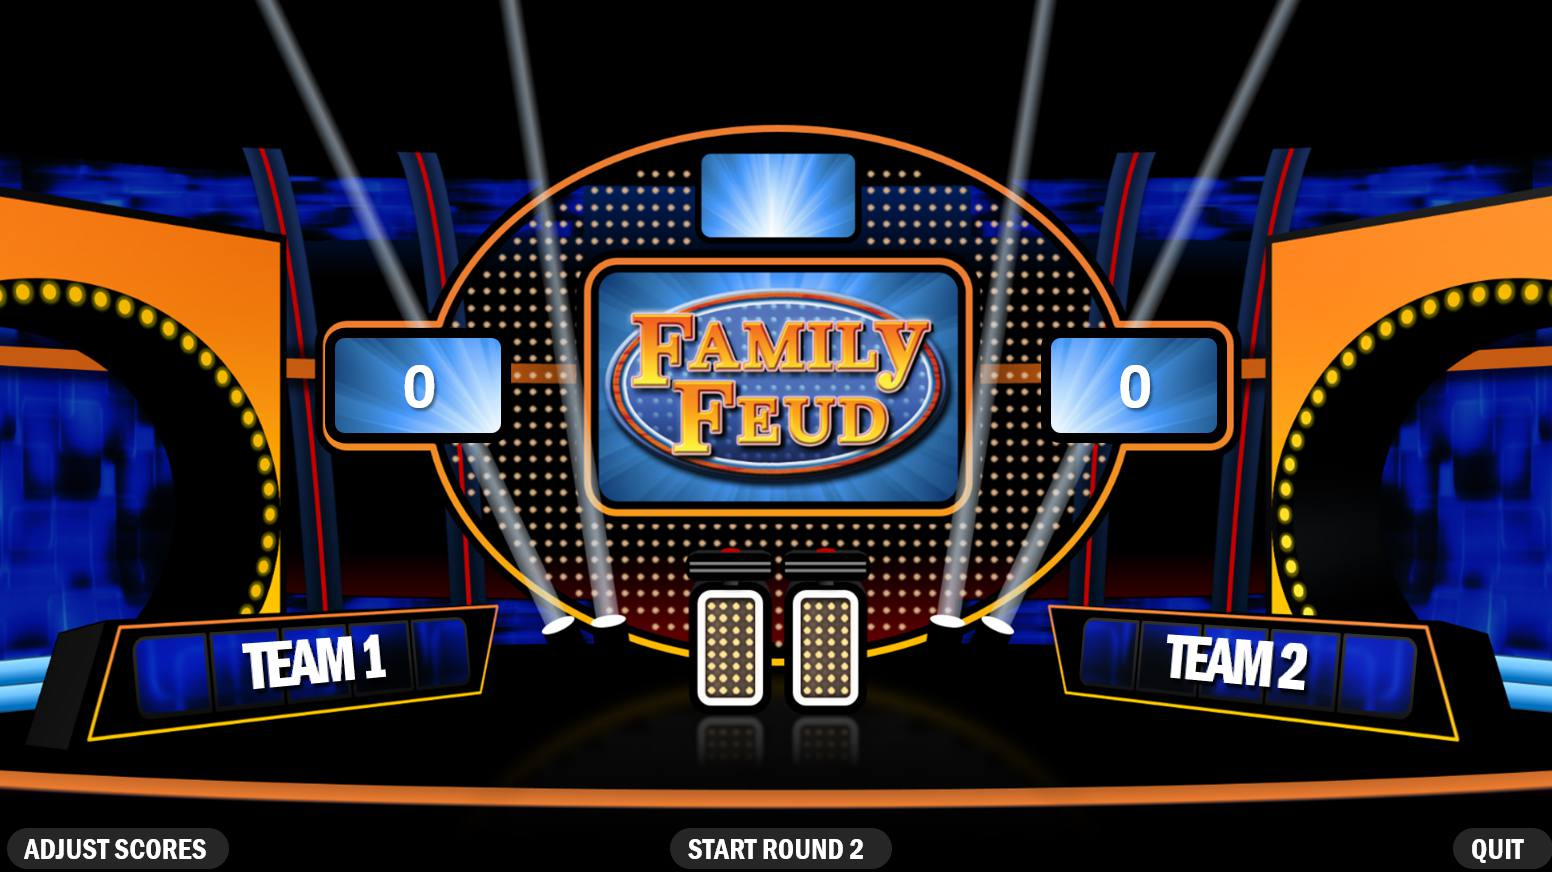 4 Best Free Family Feud Powerpoint Templates Intended For Family Feud Powerpoint Template With Sound